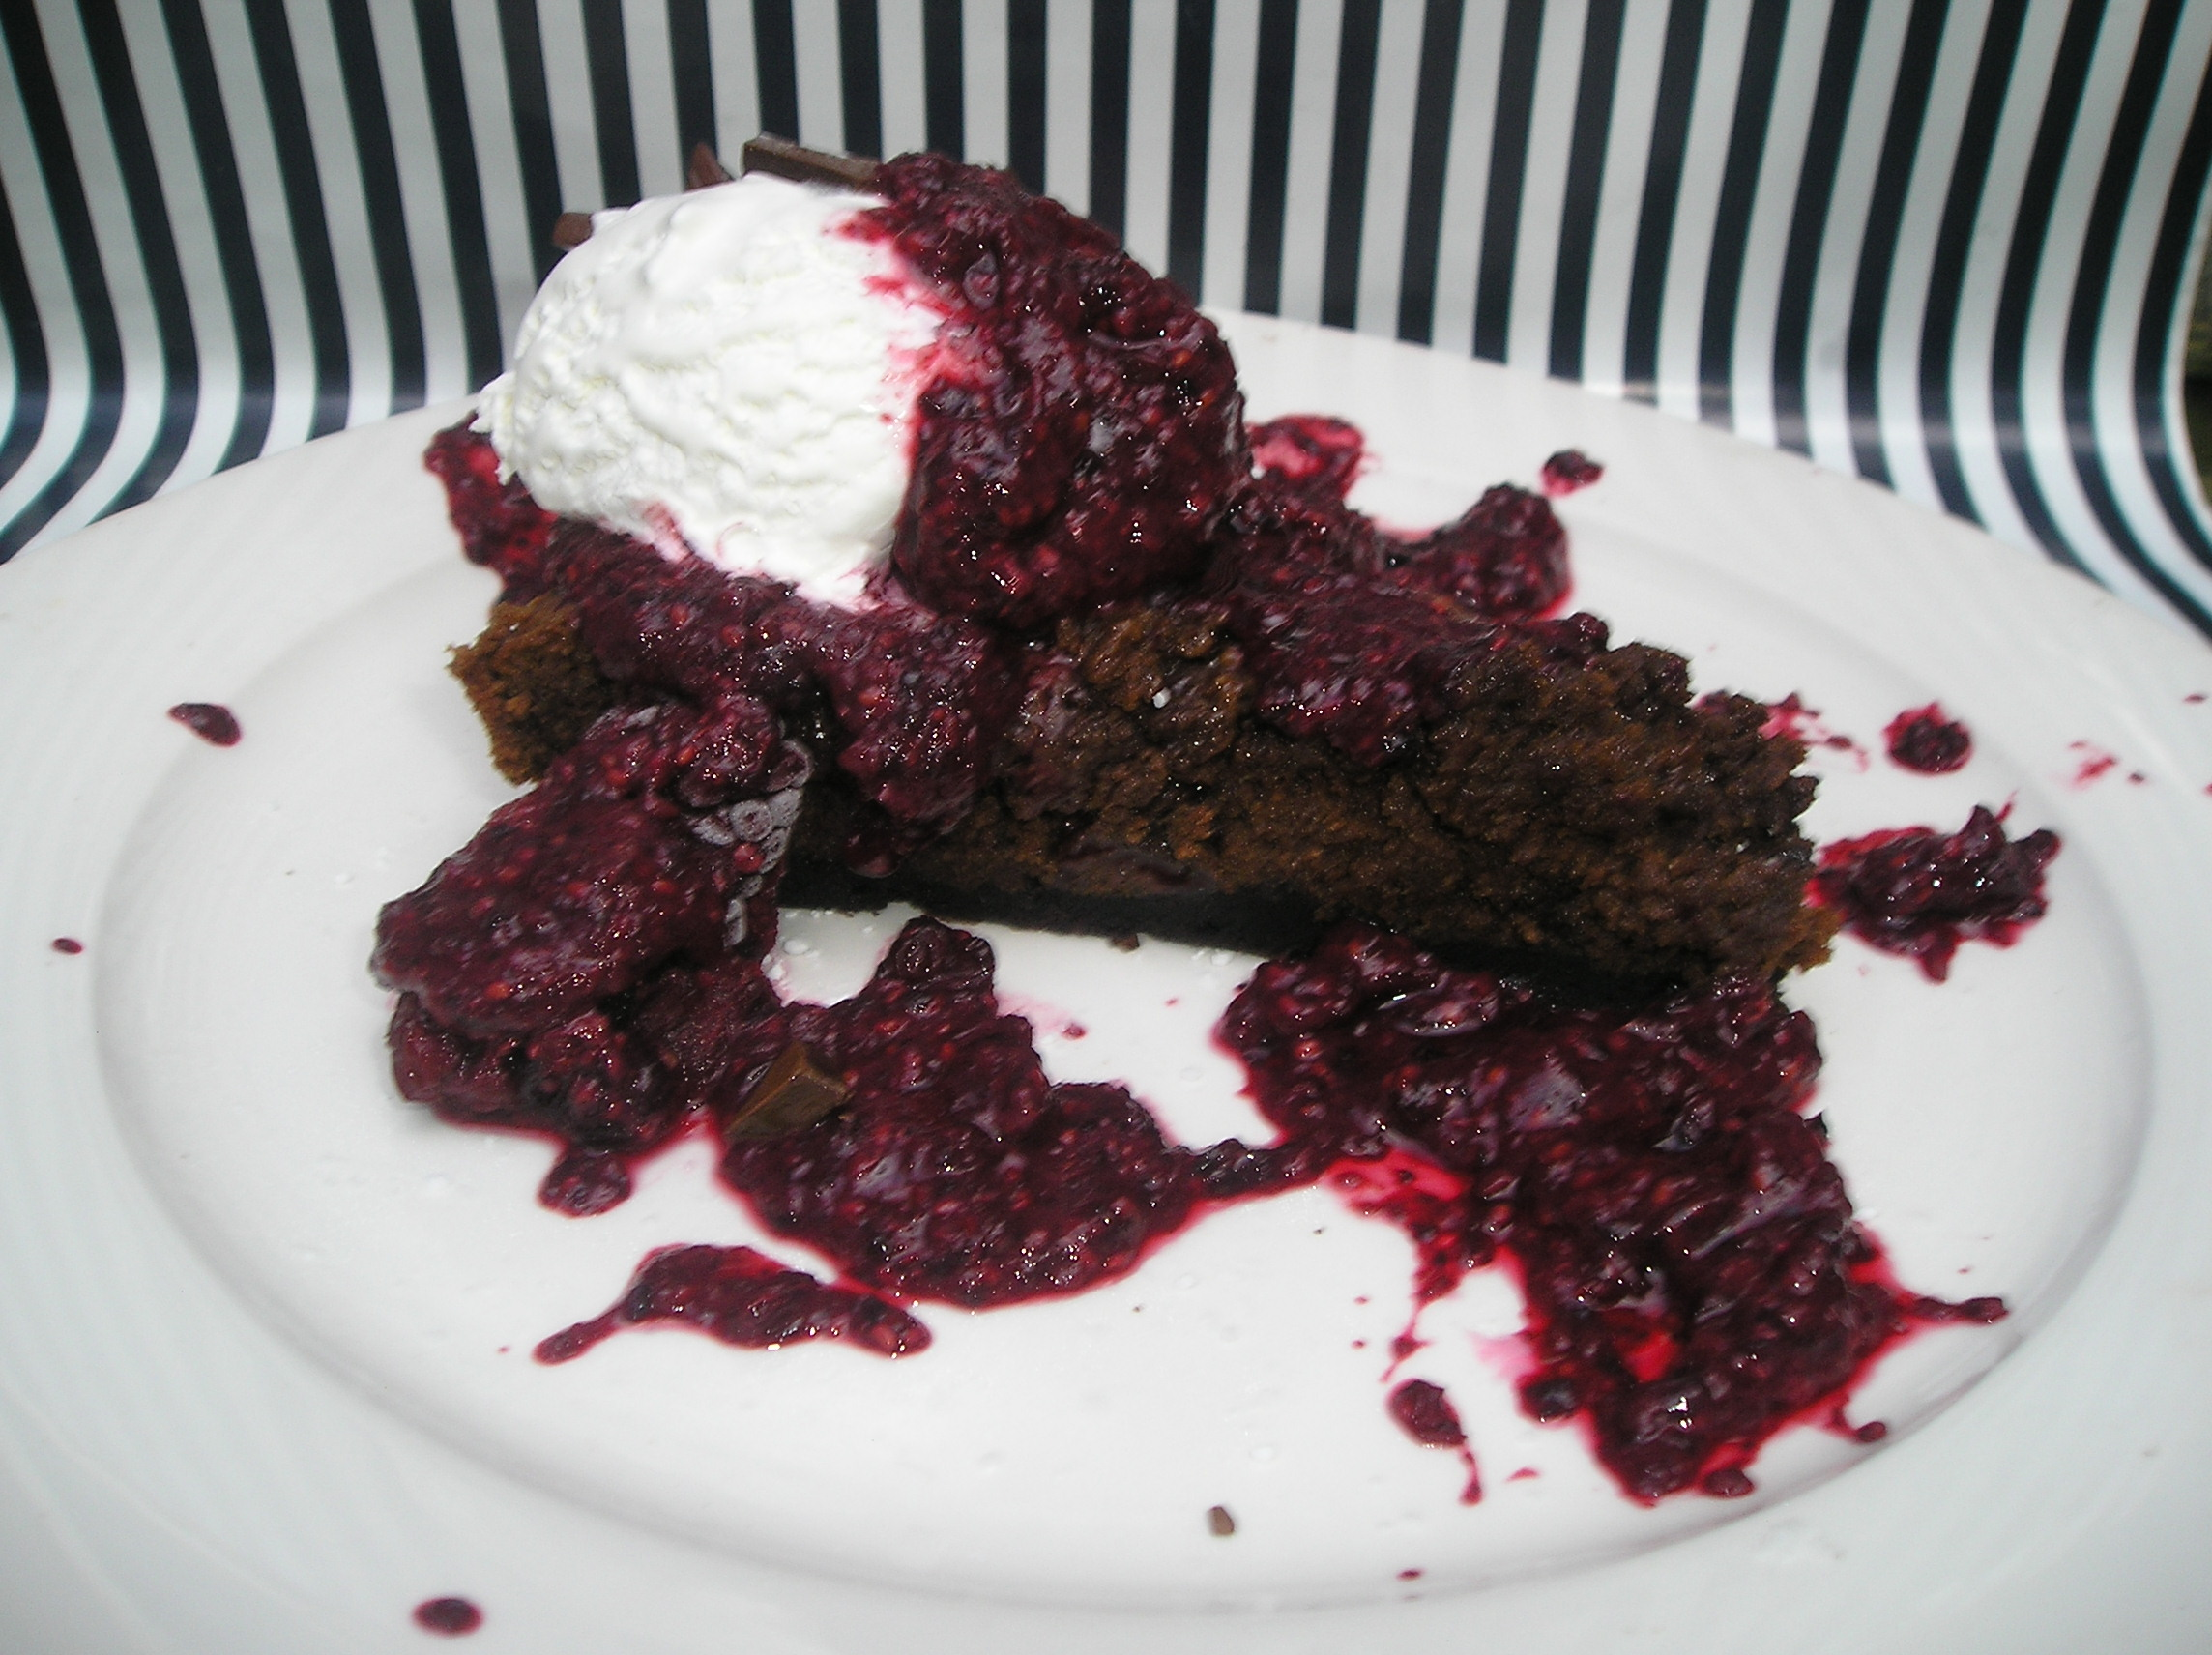 LIFE BY CHOCOLATE - LOWFAT CHOCOLATE BROWNIE PIE made with XOCAI  healthy dark chocolate, that is actually GOOD for you!